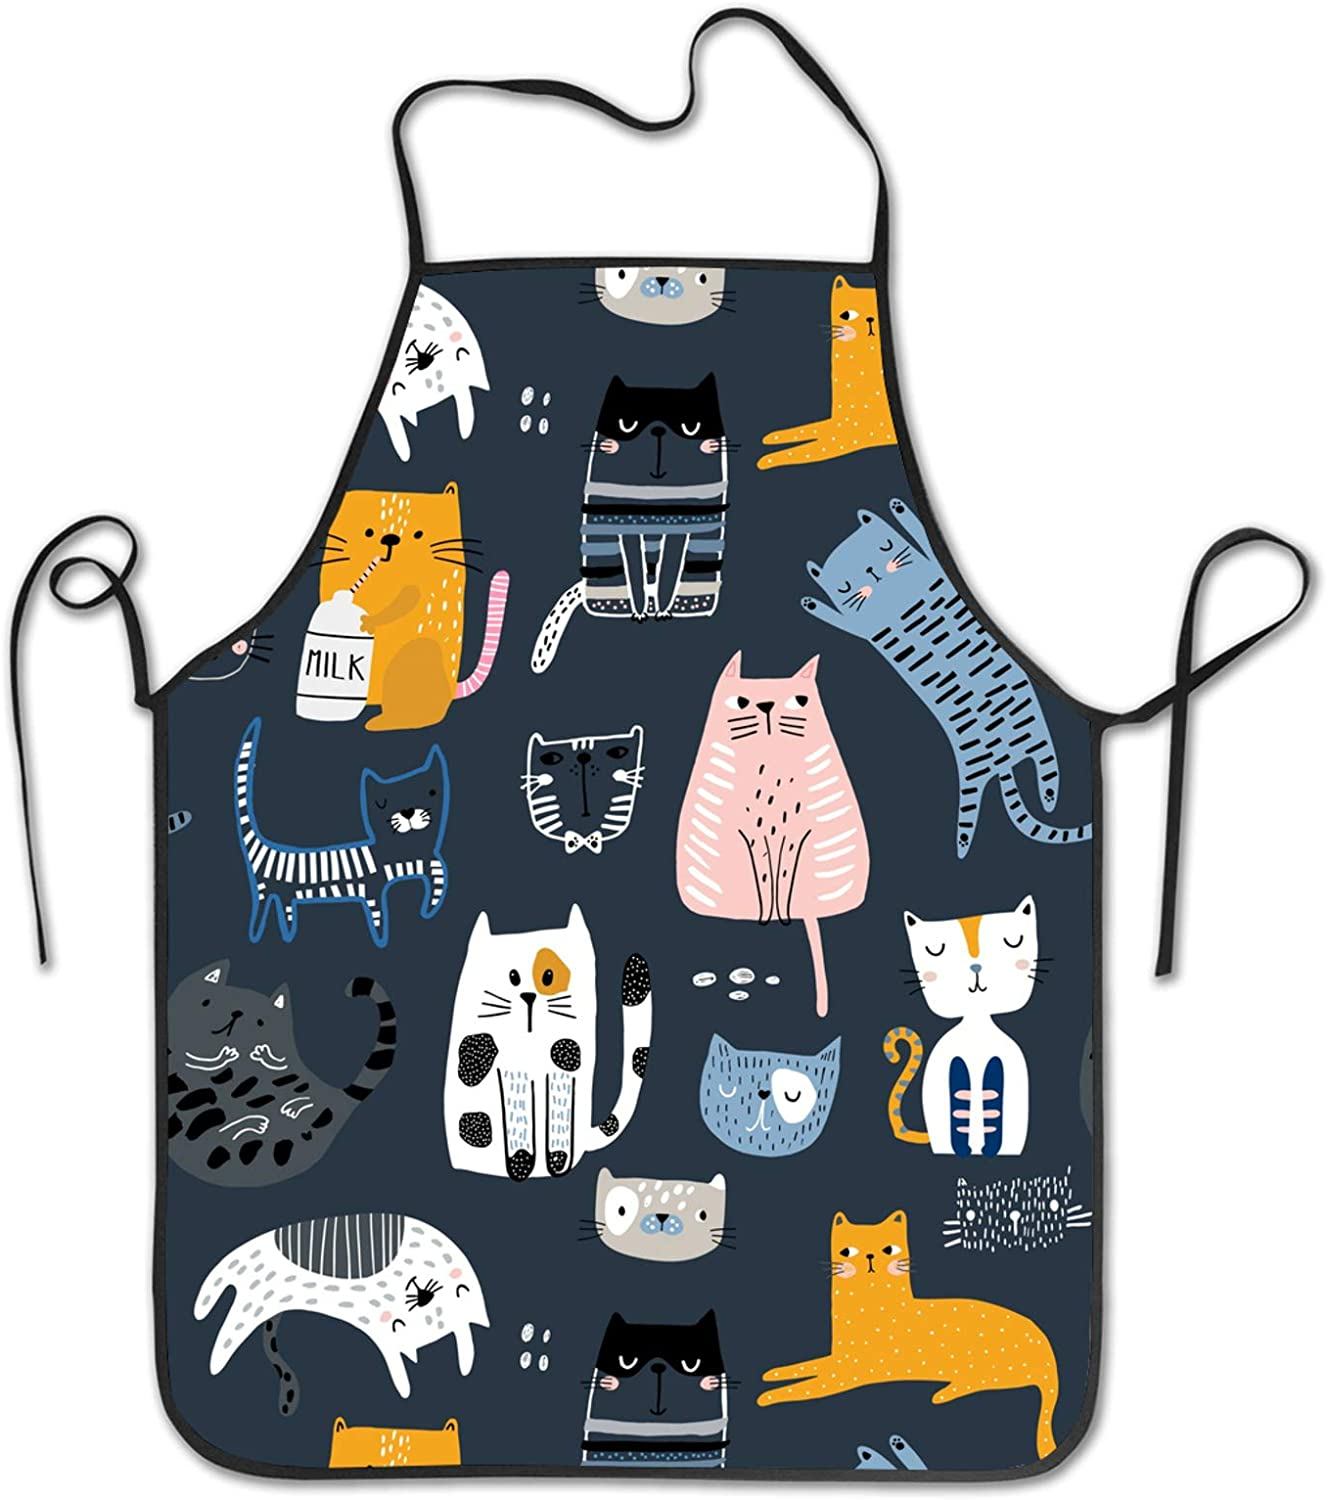 Cartoon Flying Pig with Wings Kitchen Apron home chef Bib with for Cooking Gardening Adult Size Unisex Pink Blue